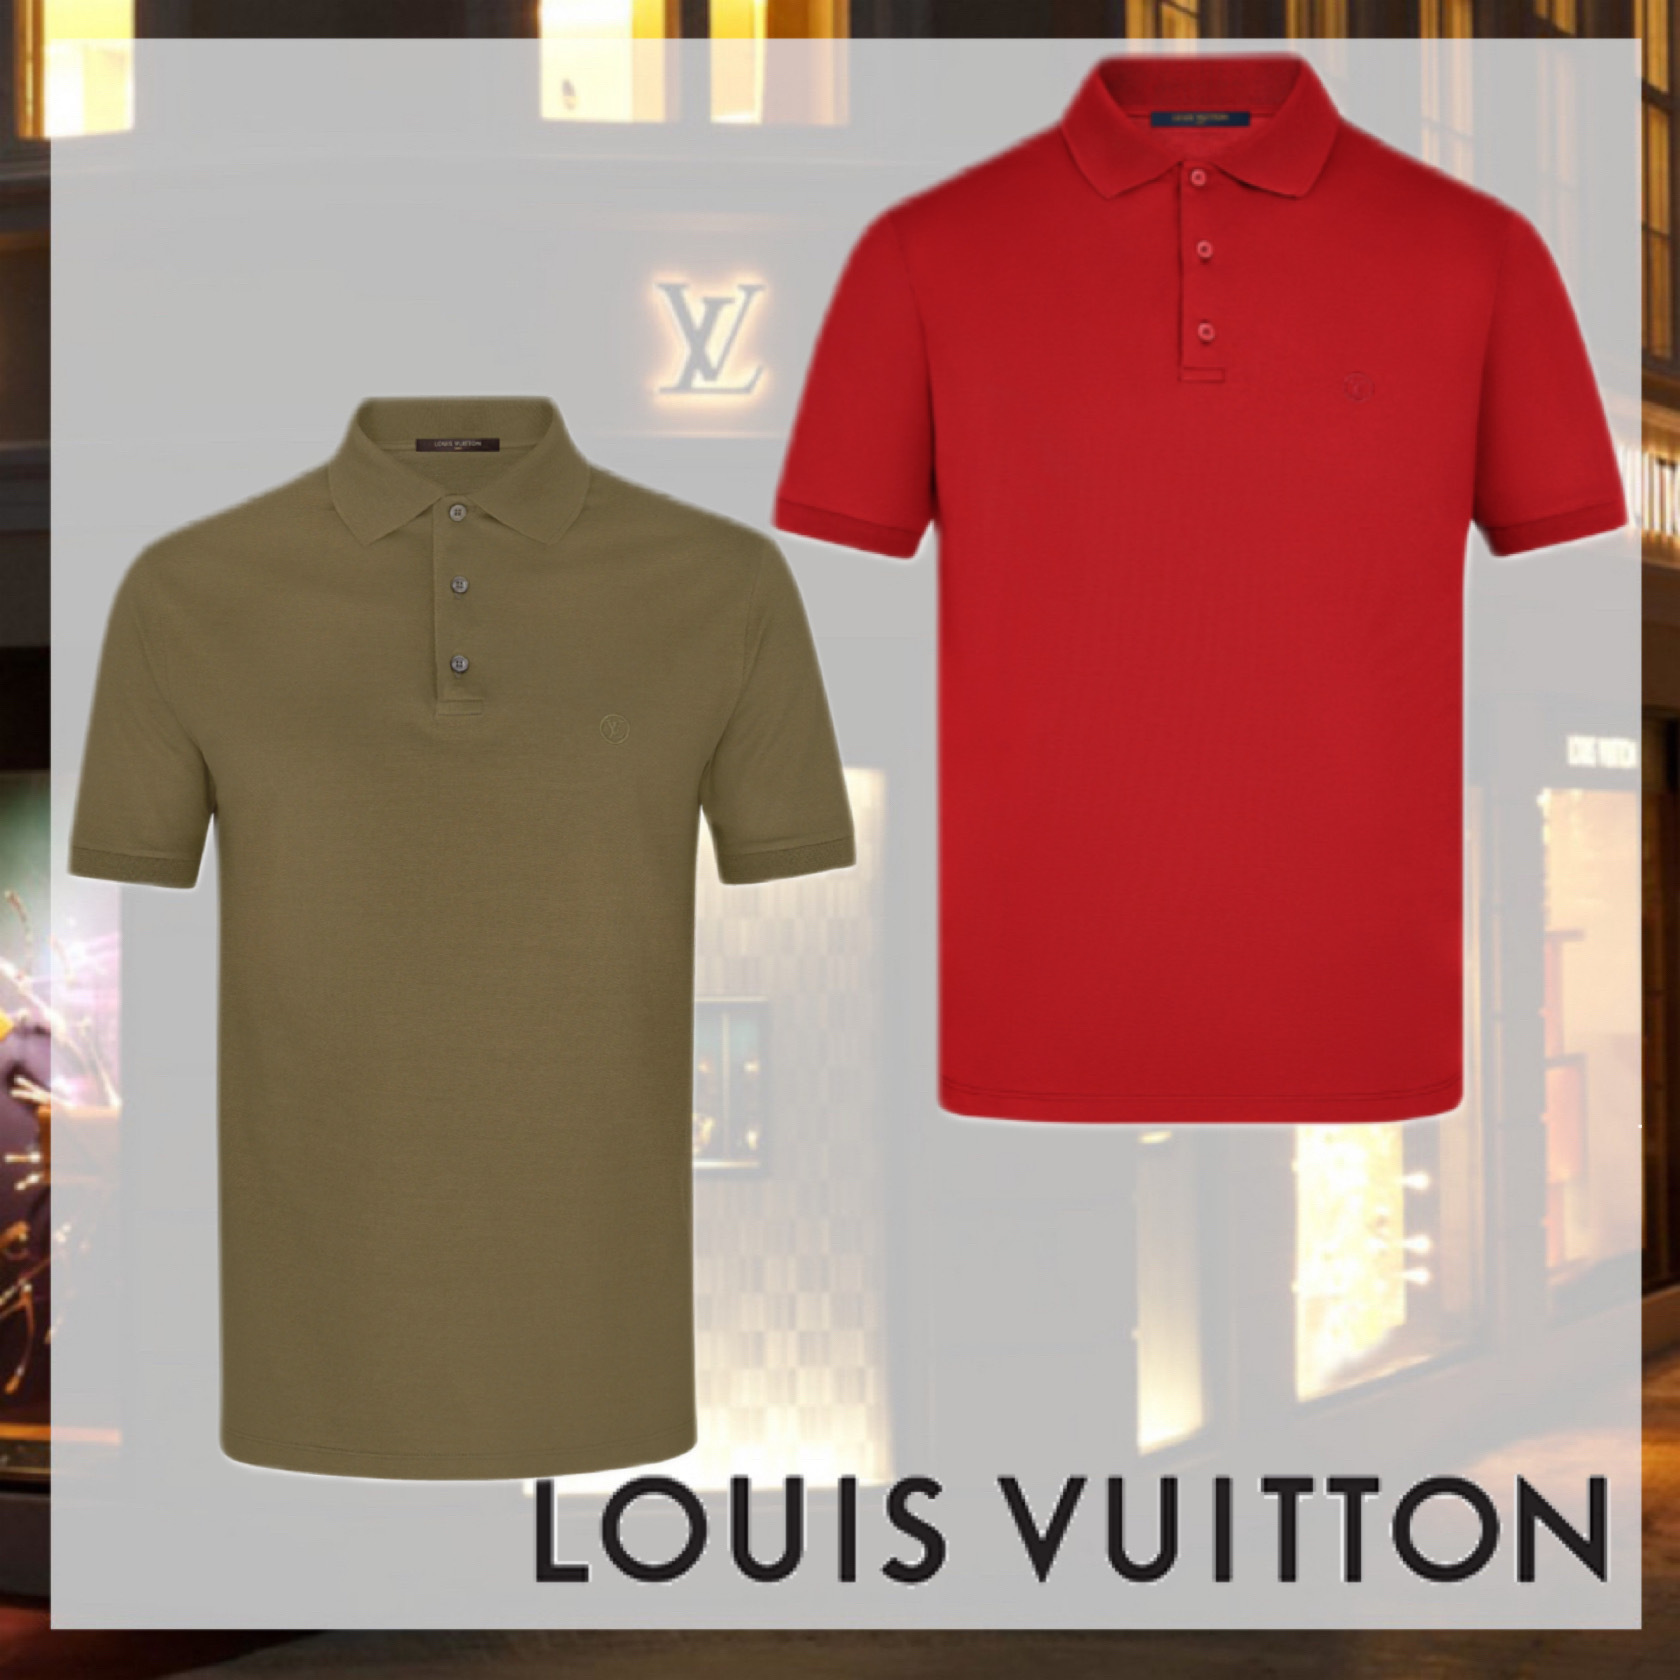 AW新作 大人気 LOUISVUITTON クラシック半袖ピケポロシャツ (Louis Vuitton/ポロシャツ) 1A1VGH  1A2IJZ